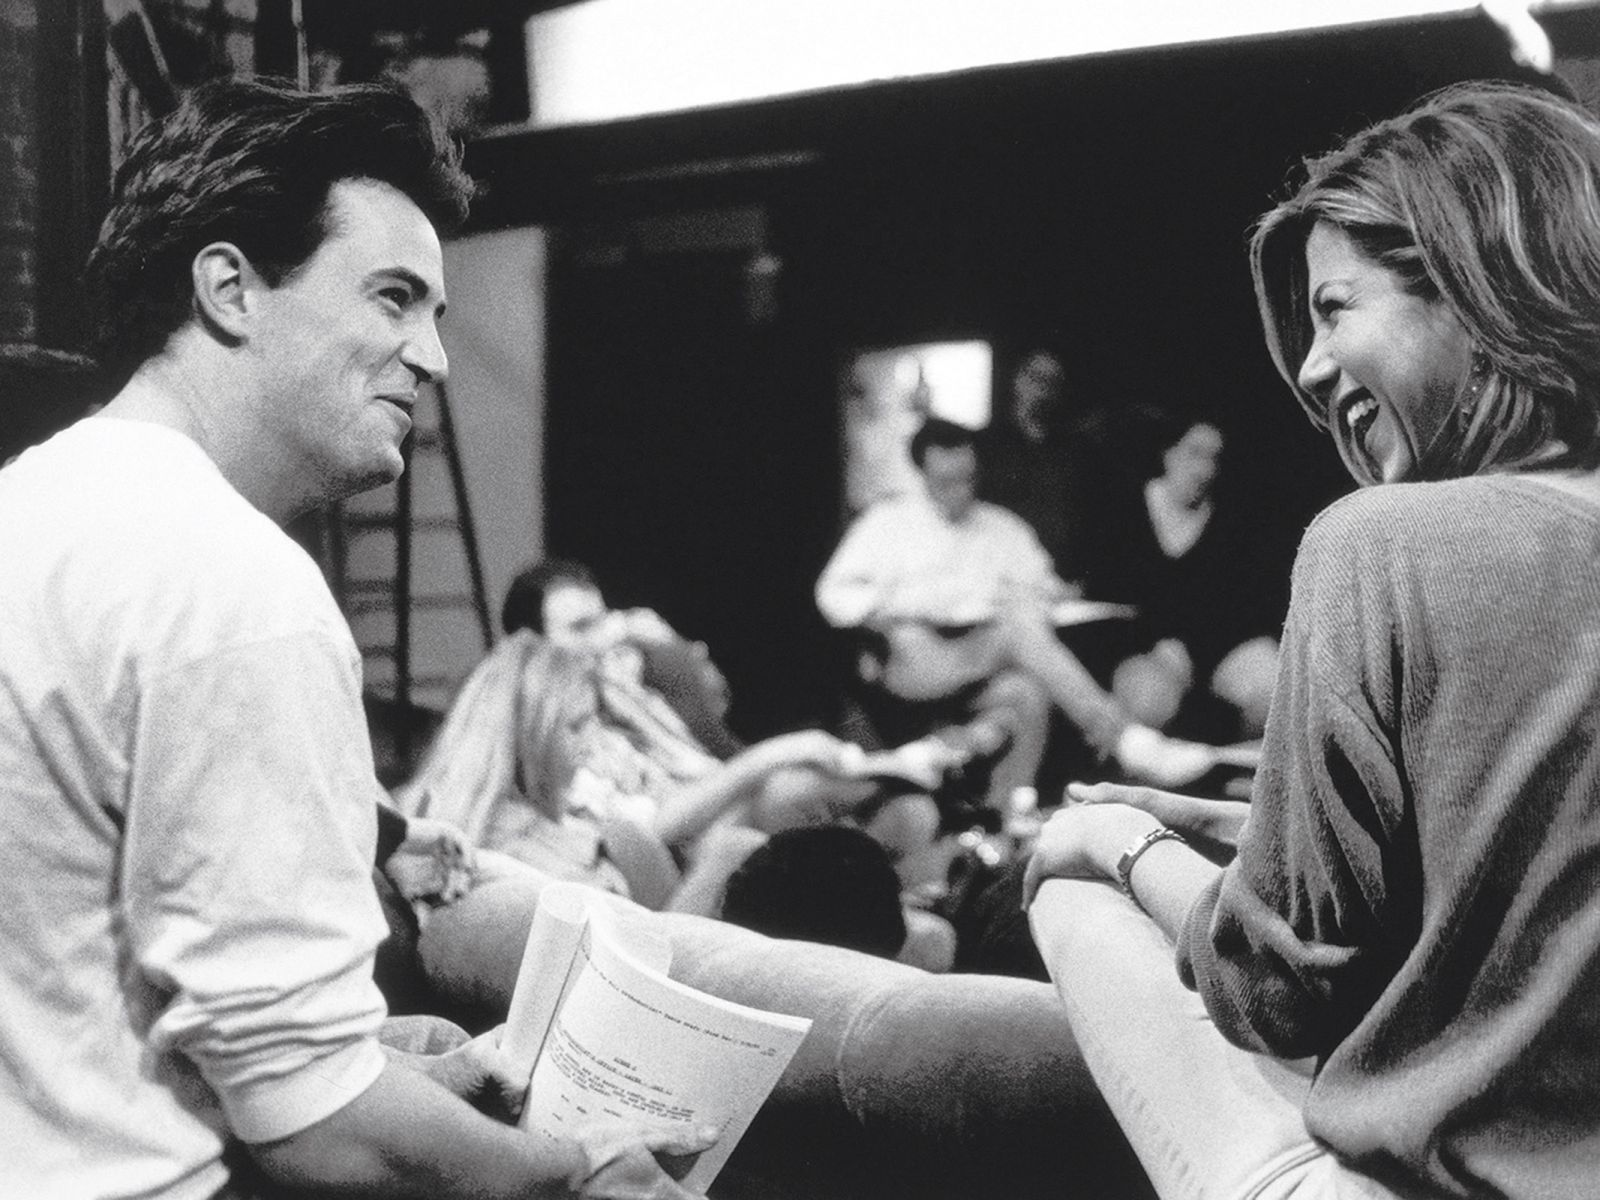 chandler and rachel looking happy while shooting